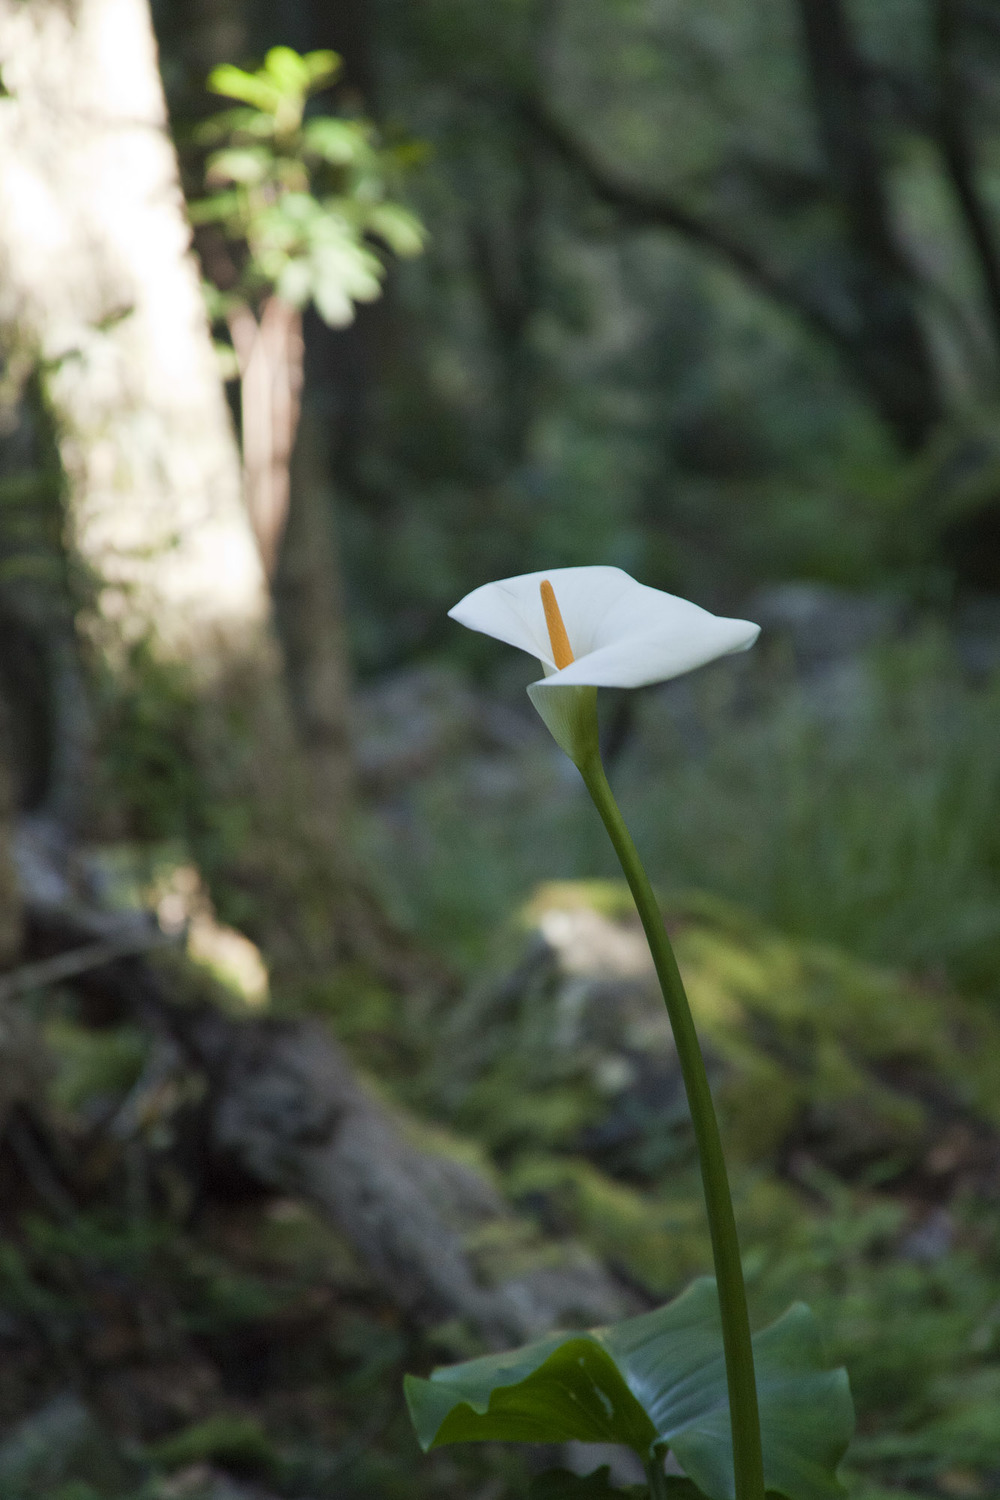 A solitary lily in the gorge